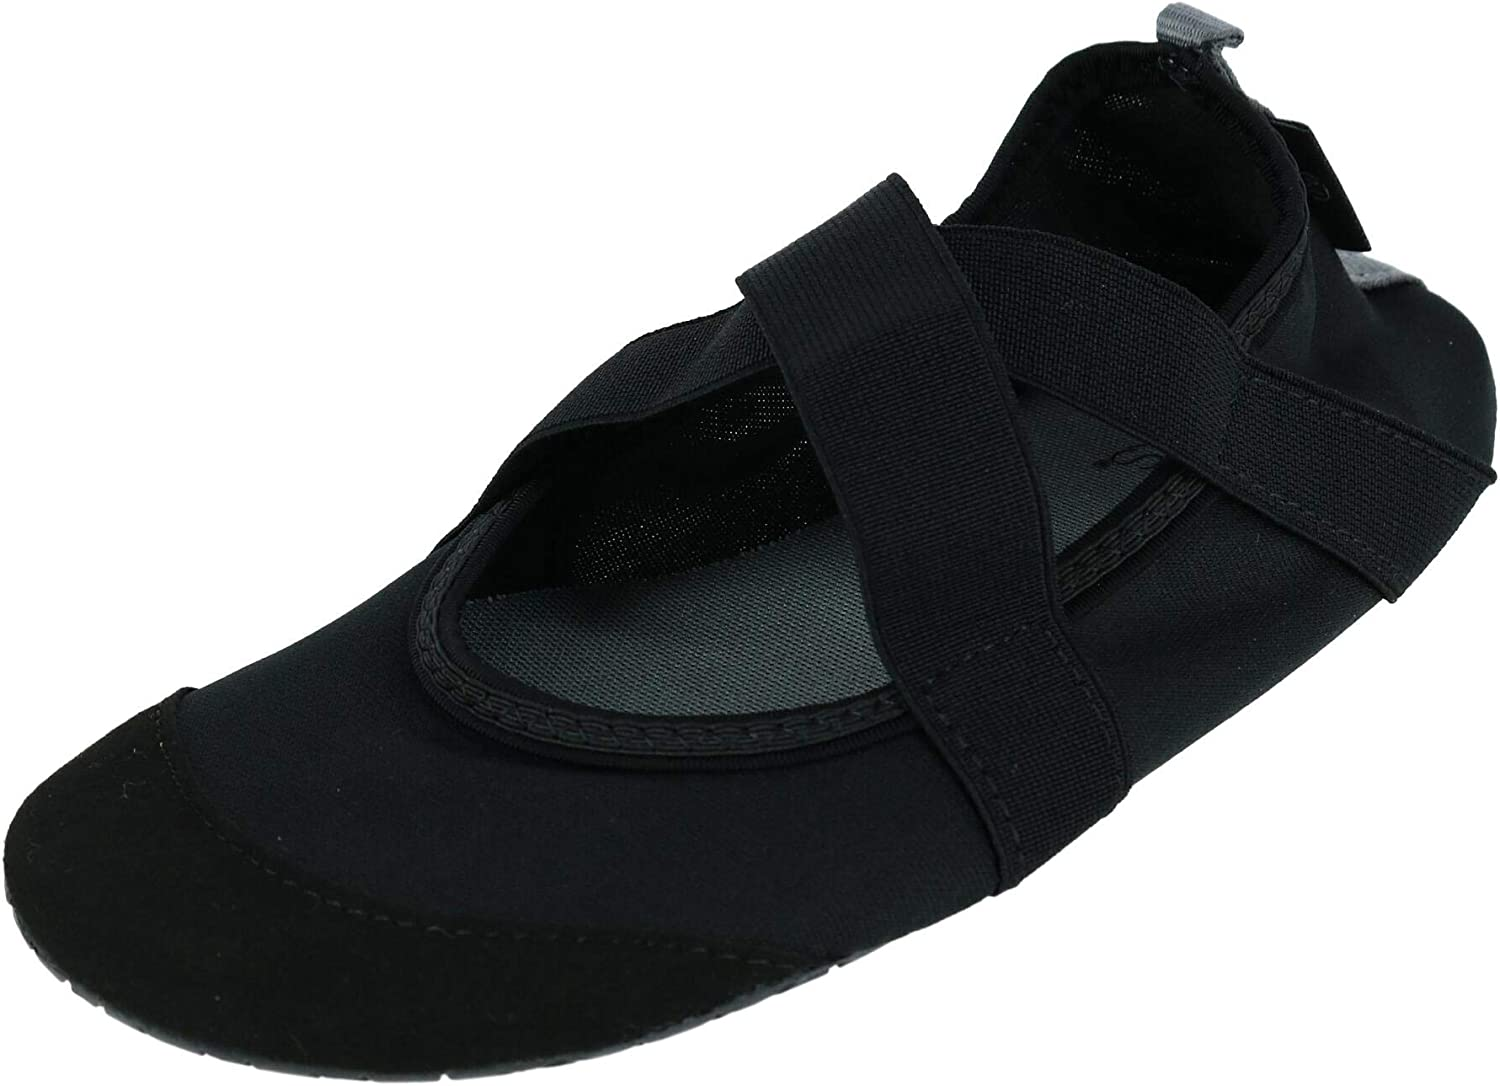 FitKicks Crossovers Women's Foldable Active Portland Mall Minimalist Lifestyle Store